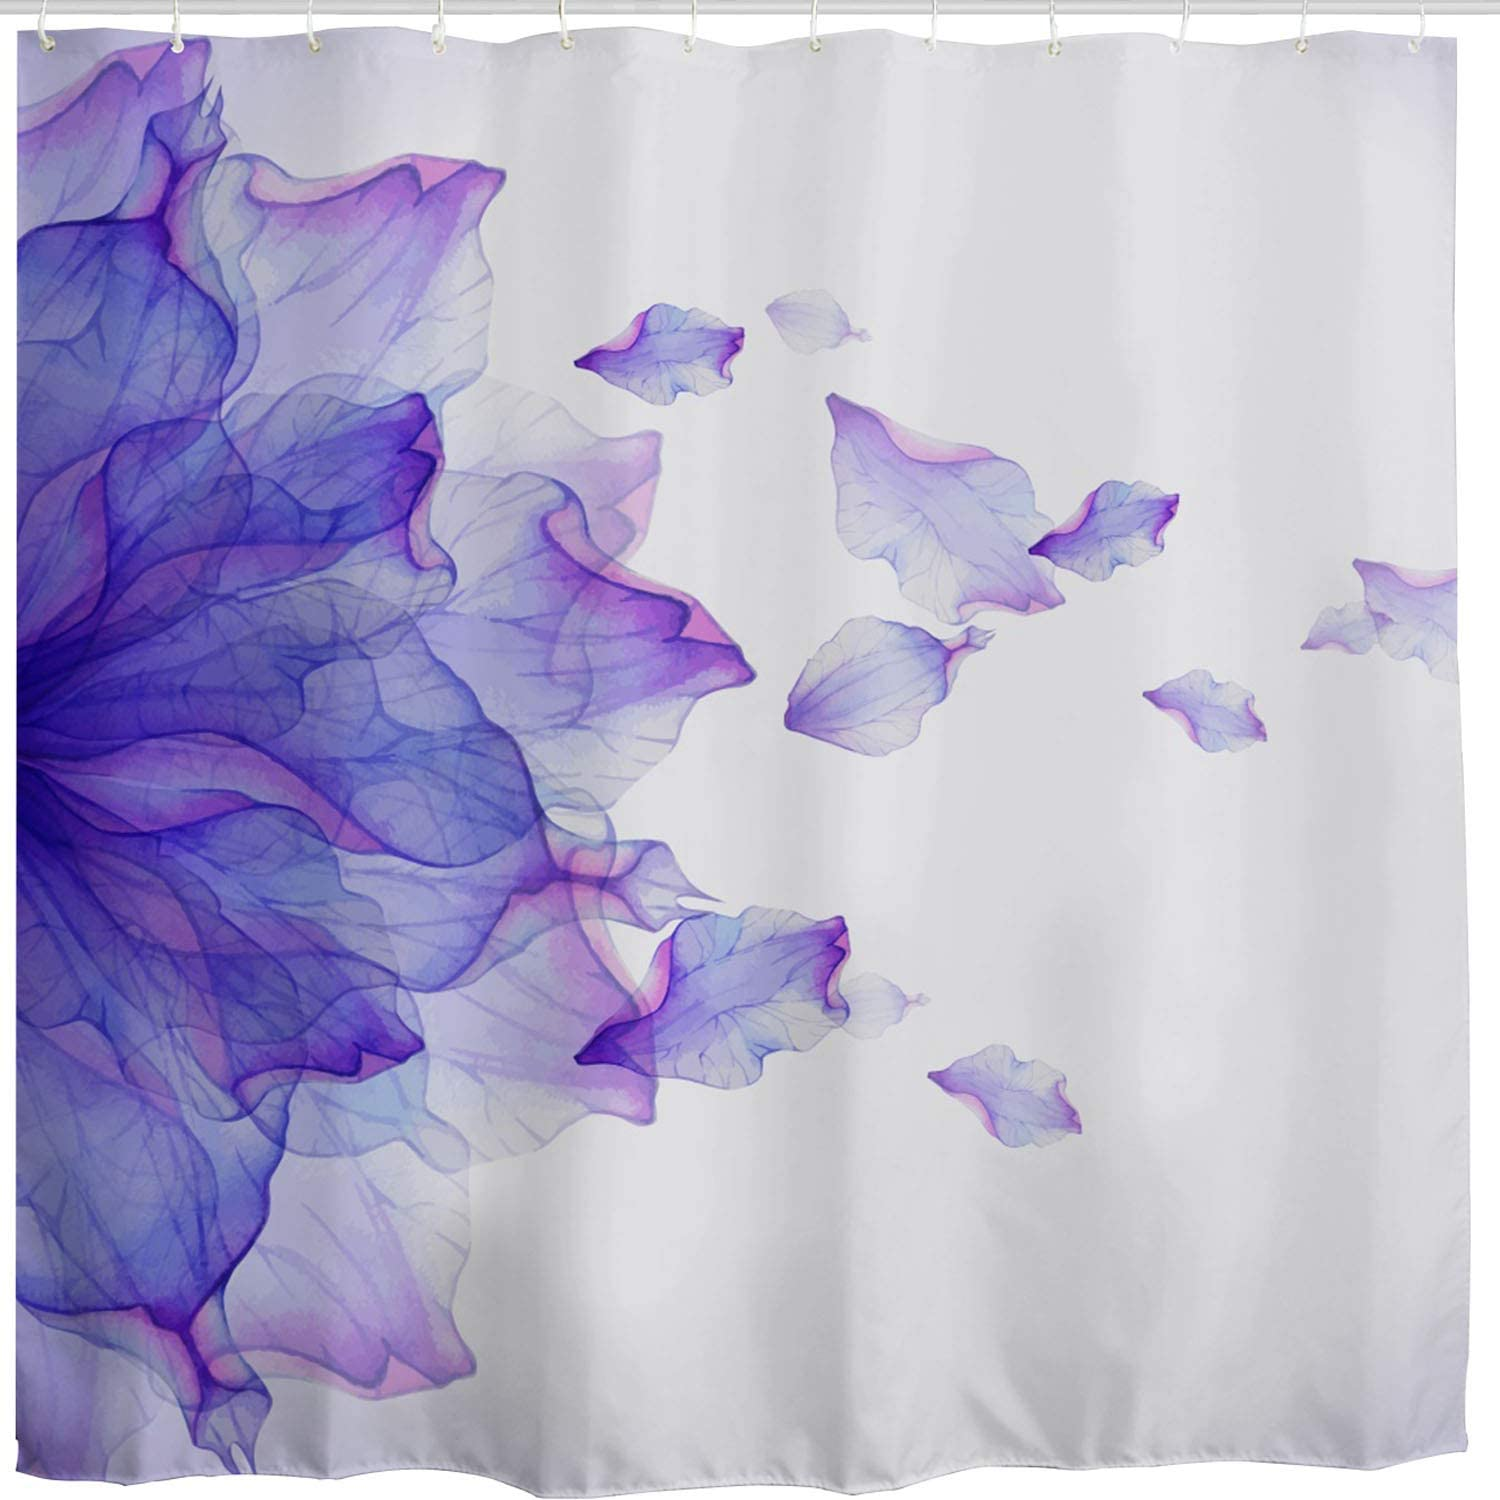 BROSHAN Purple Flower Shower Curtain,Modern Abstract Floral Ombre Petals Beautiful Elegant Nature Scene Art Print Bath Curtain,Polyester Fabric Bathroom Decor Set with Hooks,72x72 inch,White,Purple